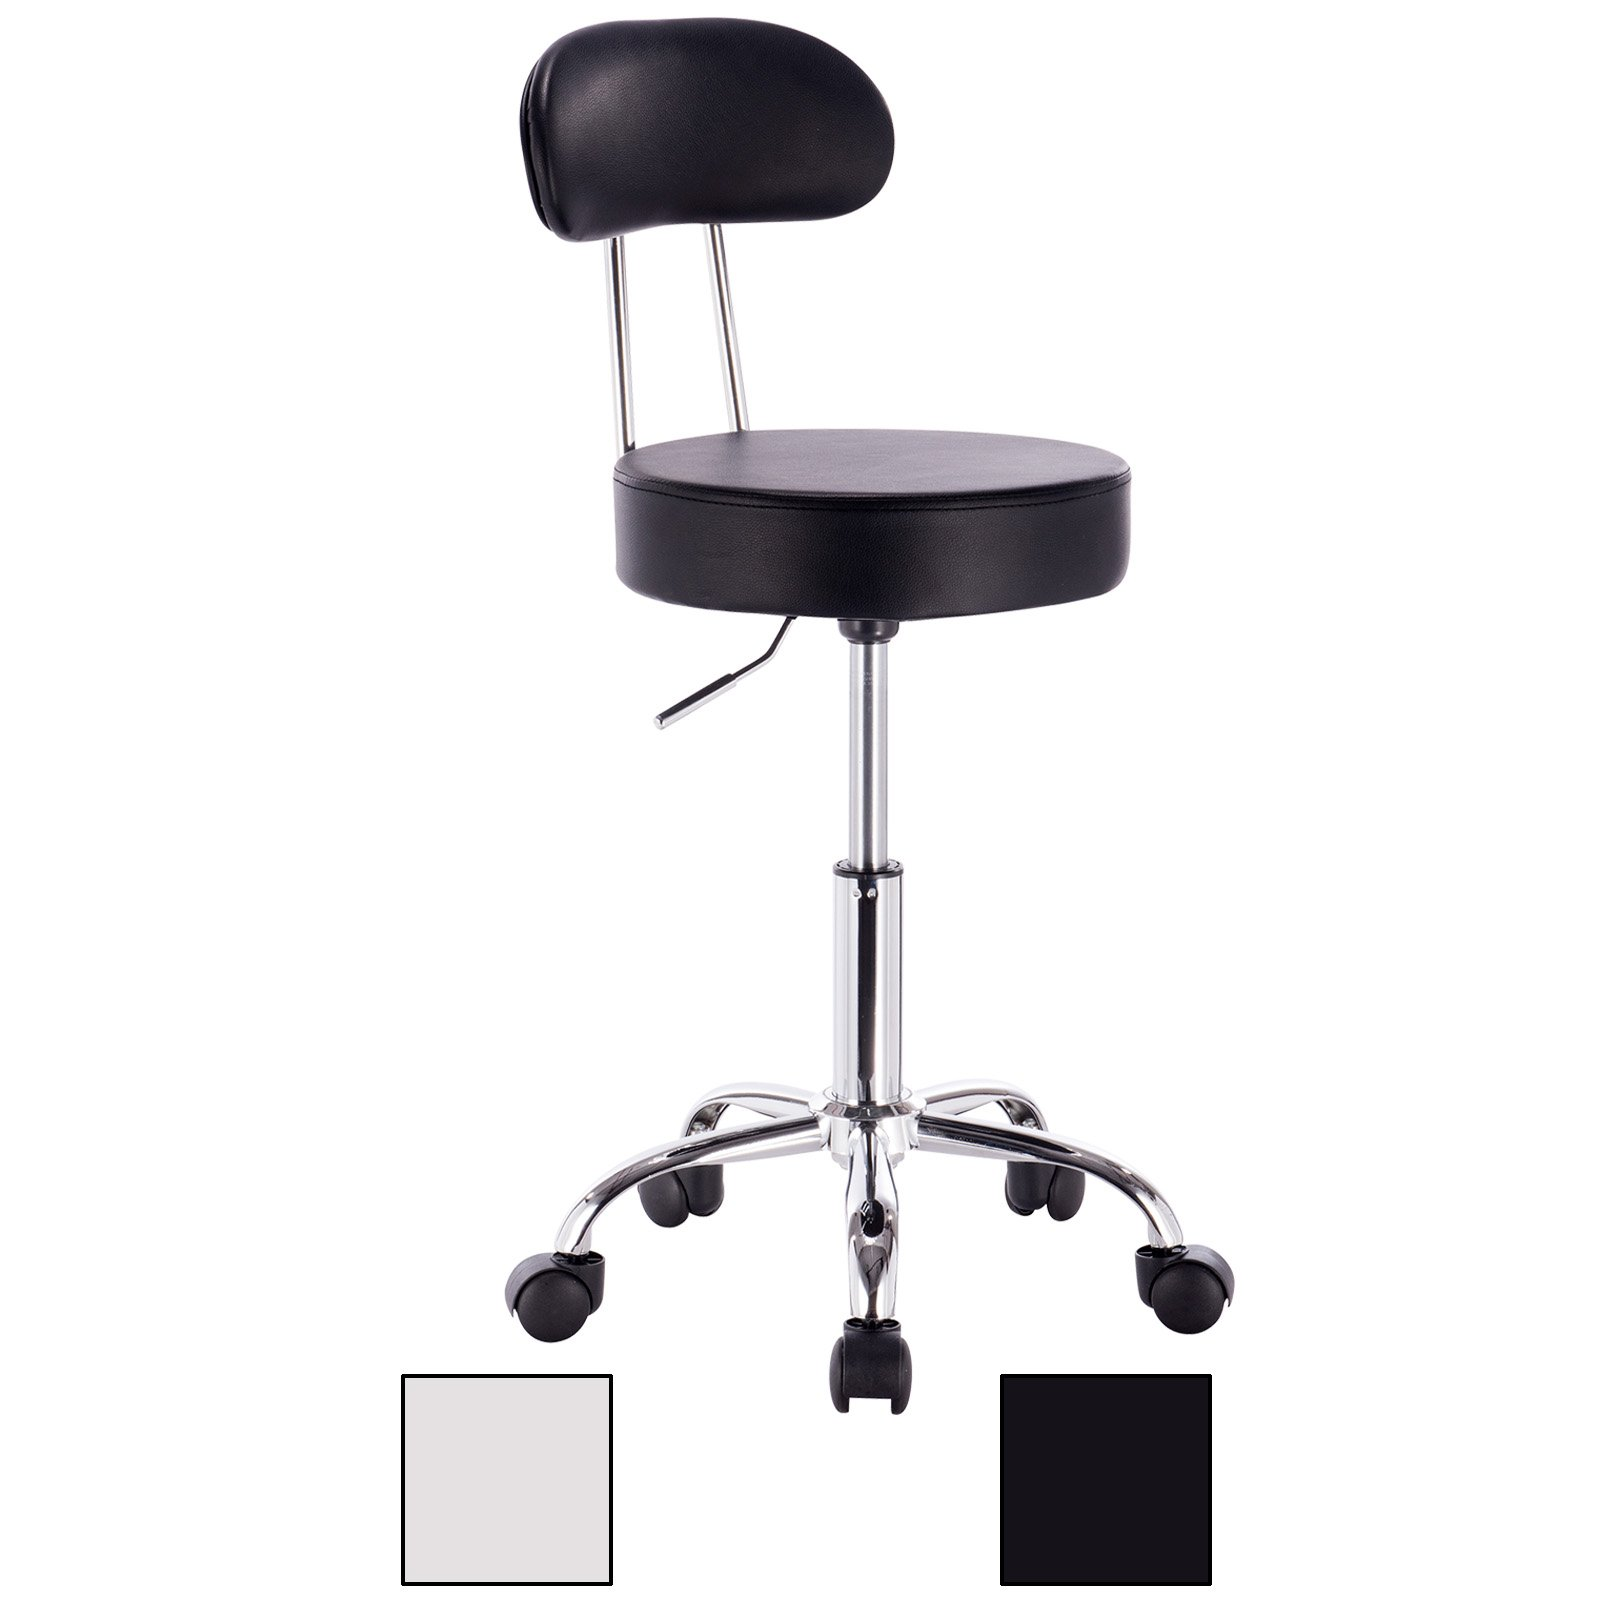 WOLTU ABSX1008blk-c 1x Faux Leather Adjustable Swivel Chair Stool with Backrest and Casters Hydraulic Gas Lift Office/Lab/Medical/Spa/Massage/Beauty/Pub Stool Seat Height:18.5''-23.2'',Black